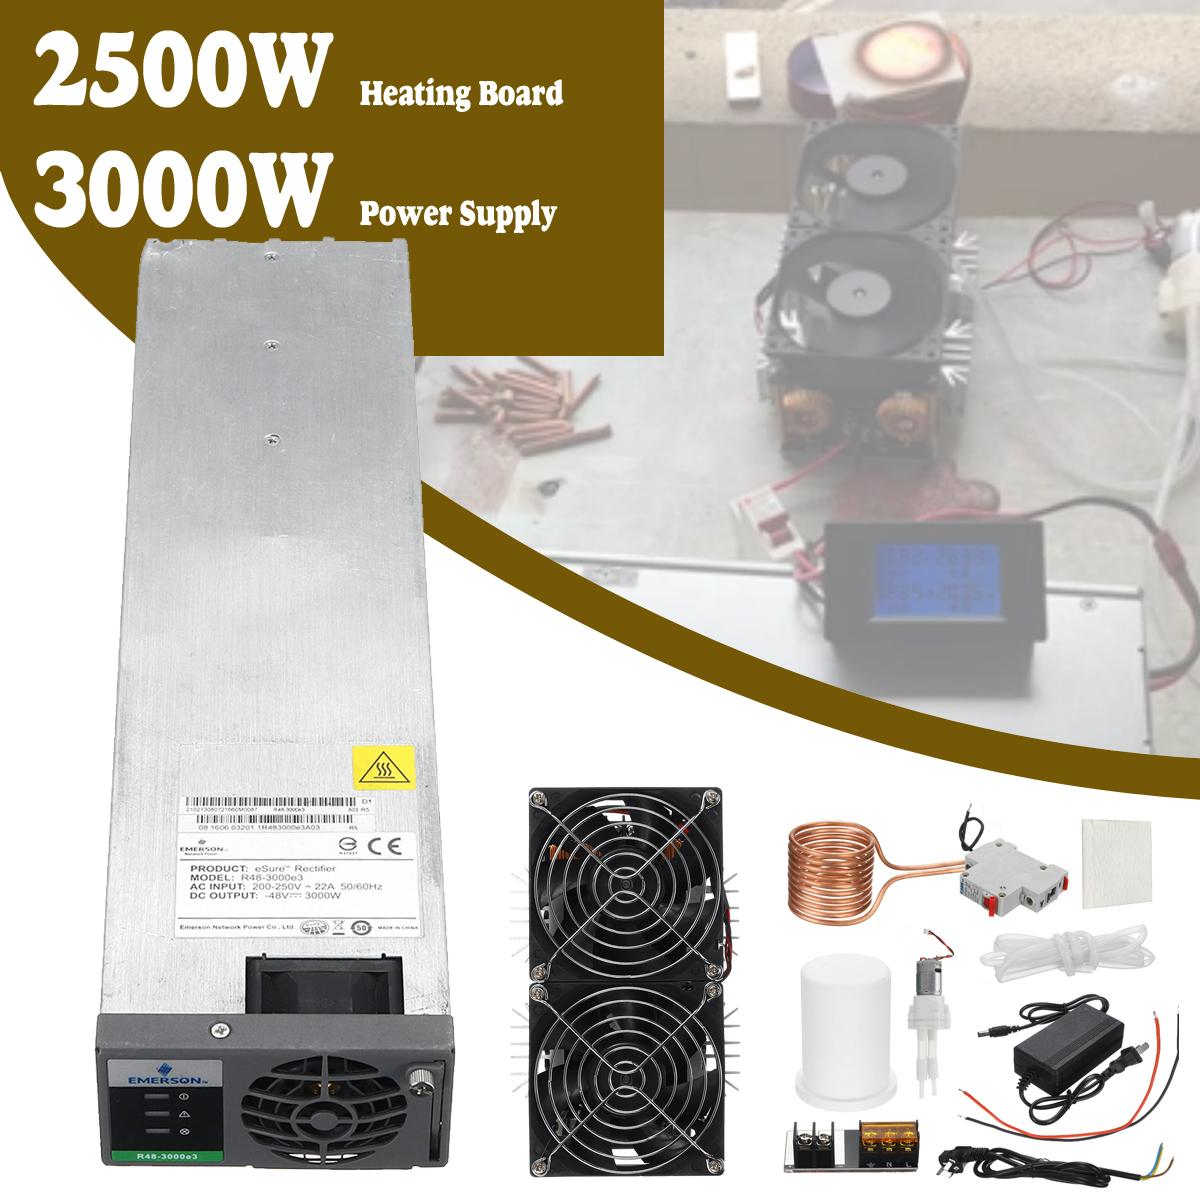 3000W 50A Power Supply + 2500W ZVS Induction Heating Board Heater + Copper  Coil